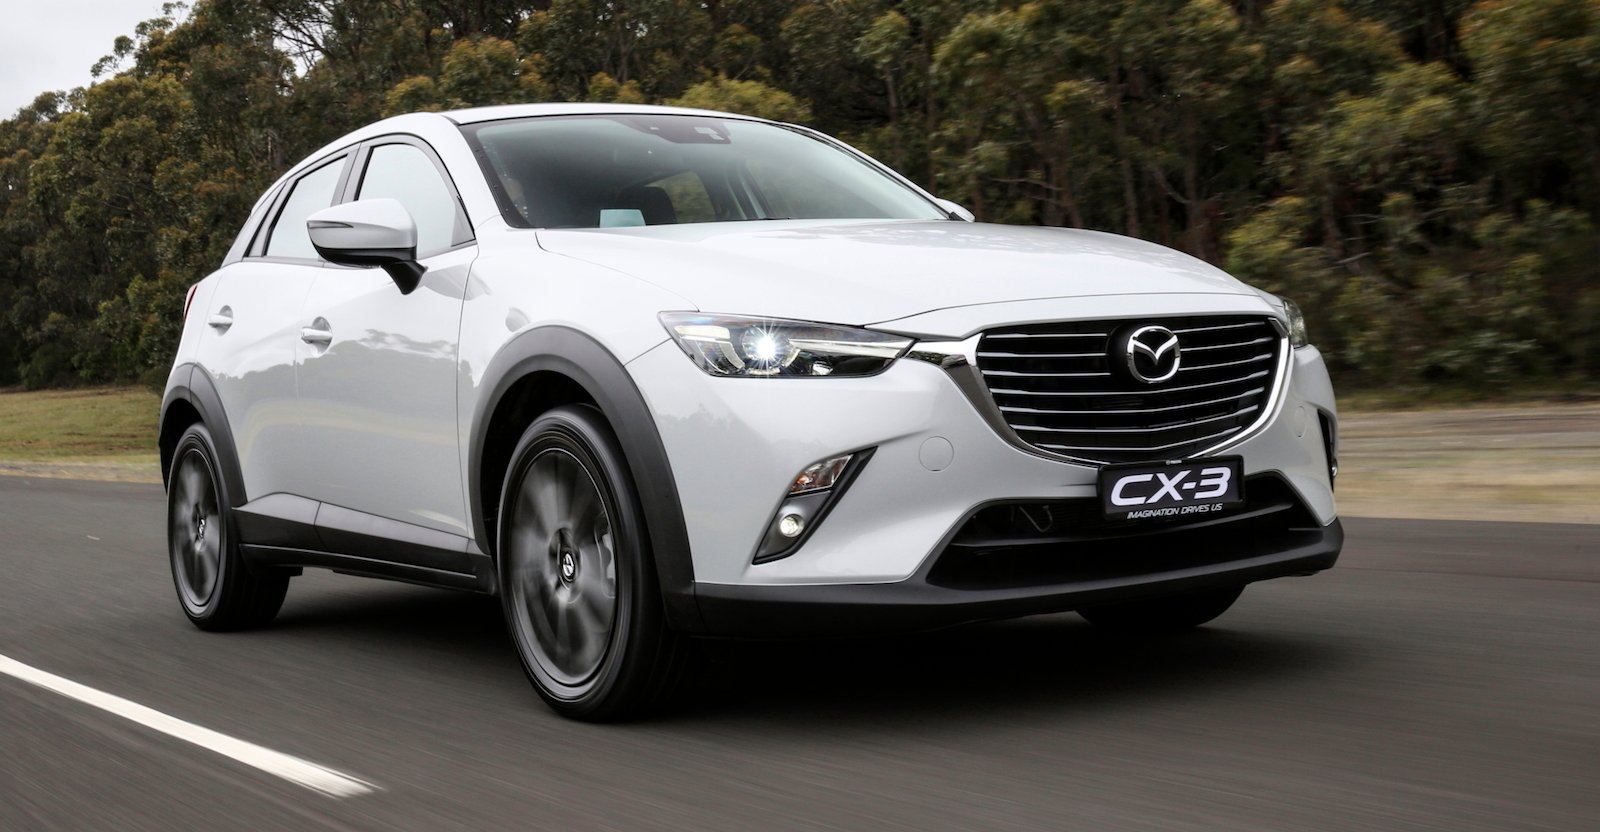 mazda cx 3 variant names and fuel consumption data revealed photos 1 of 3. Black Bedroom Furniture Sets. Home Design Ideas